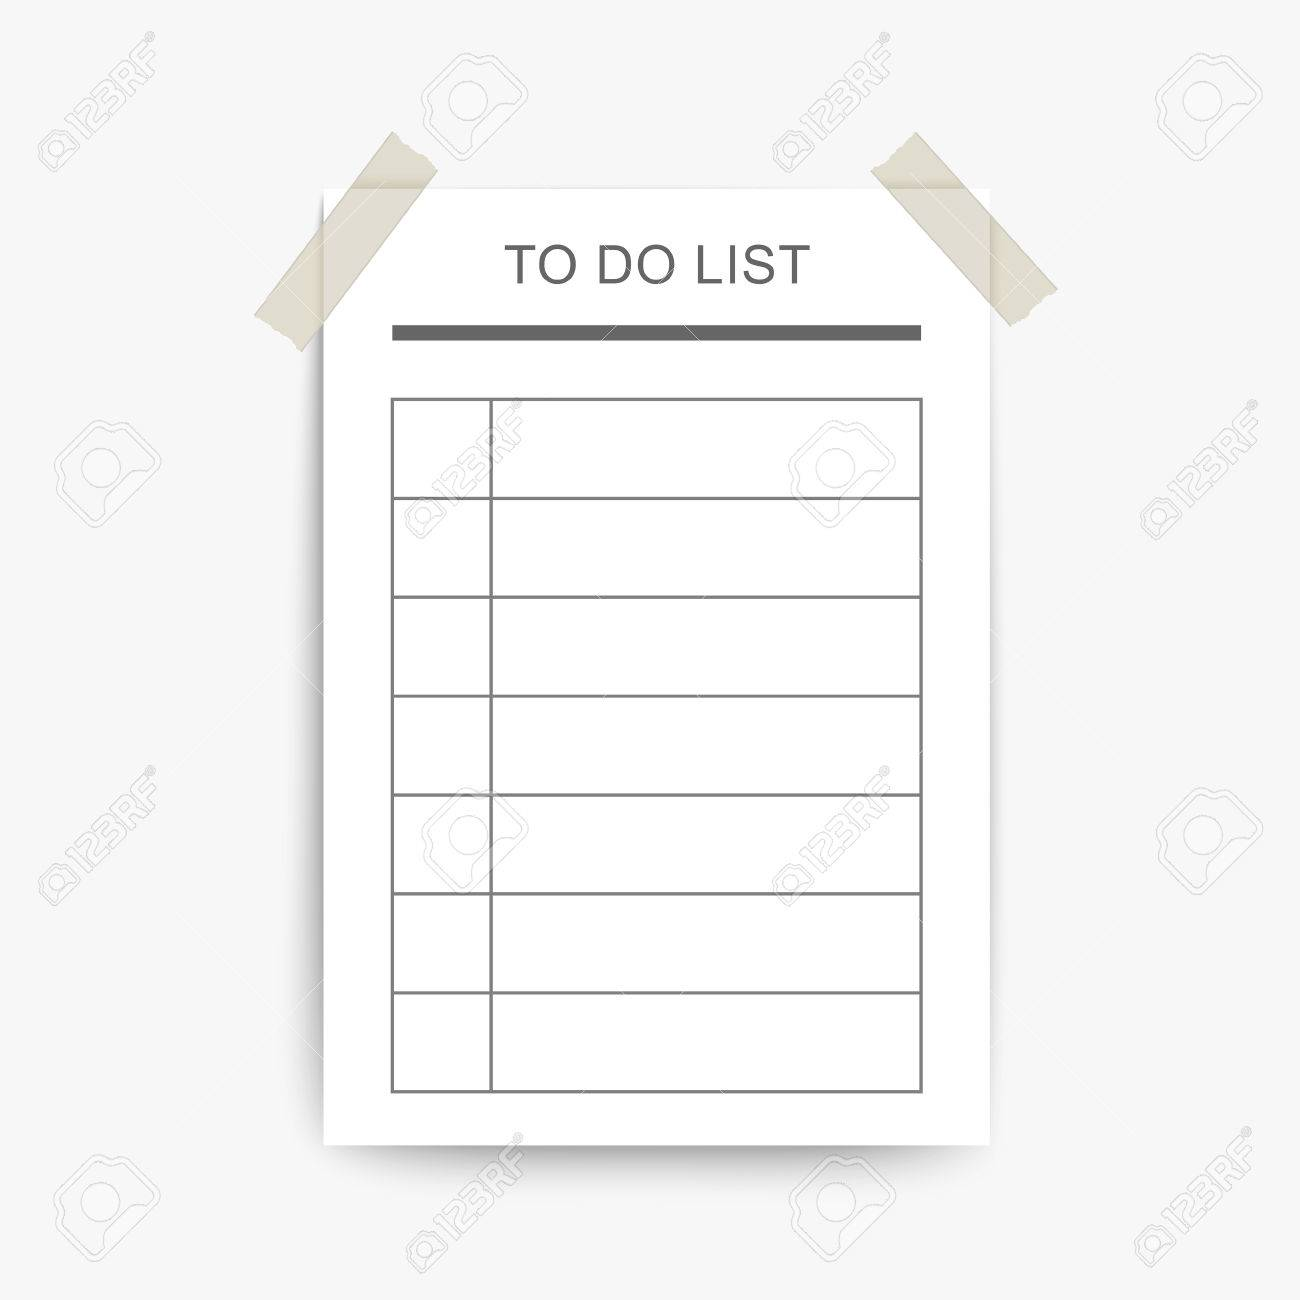 image relating to Blank to Do List identify blank in the direction of do listing content upon the white wall